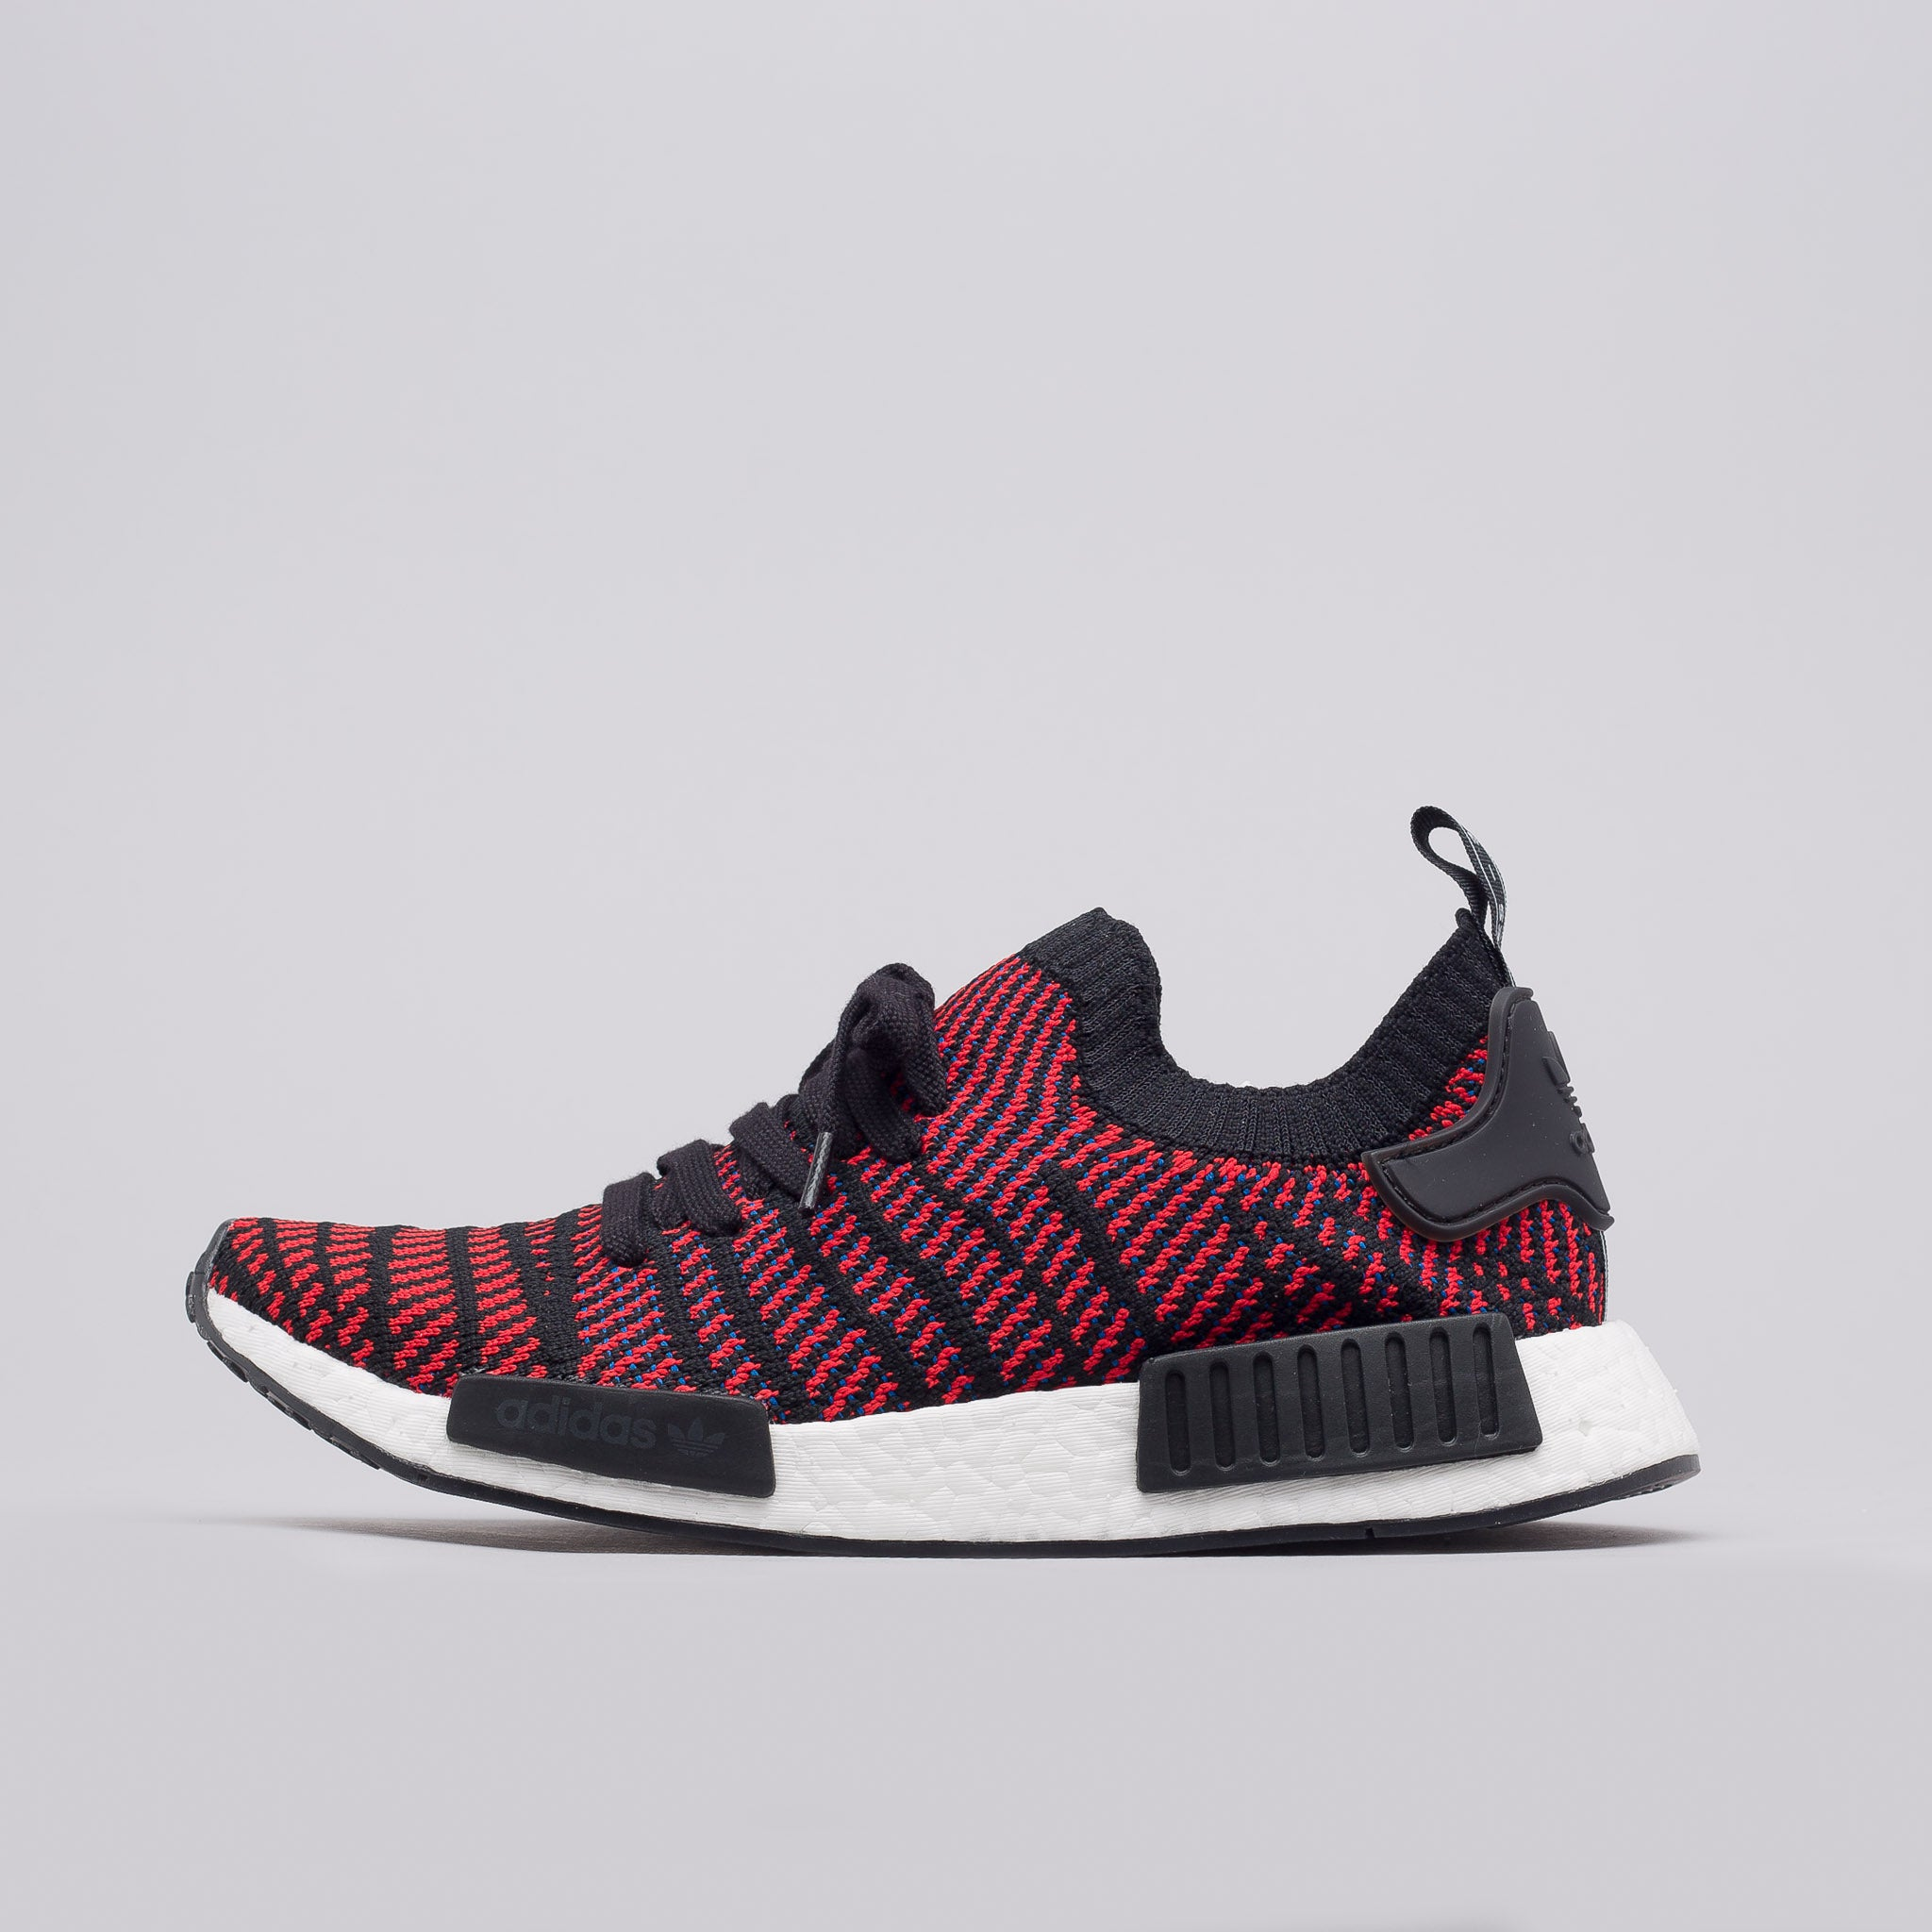 adidas nmd r1 prime knit core black / shock pink ladies trainers